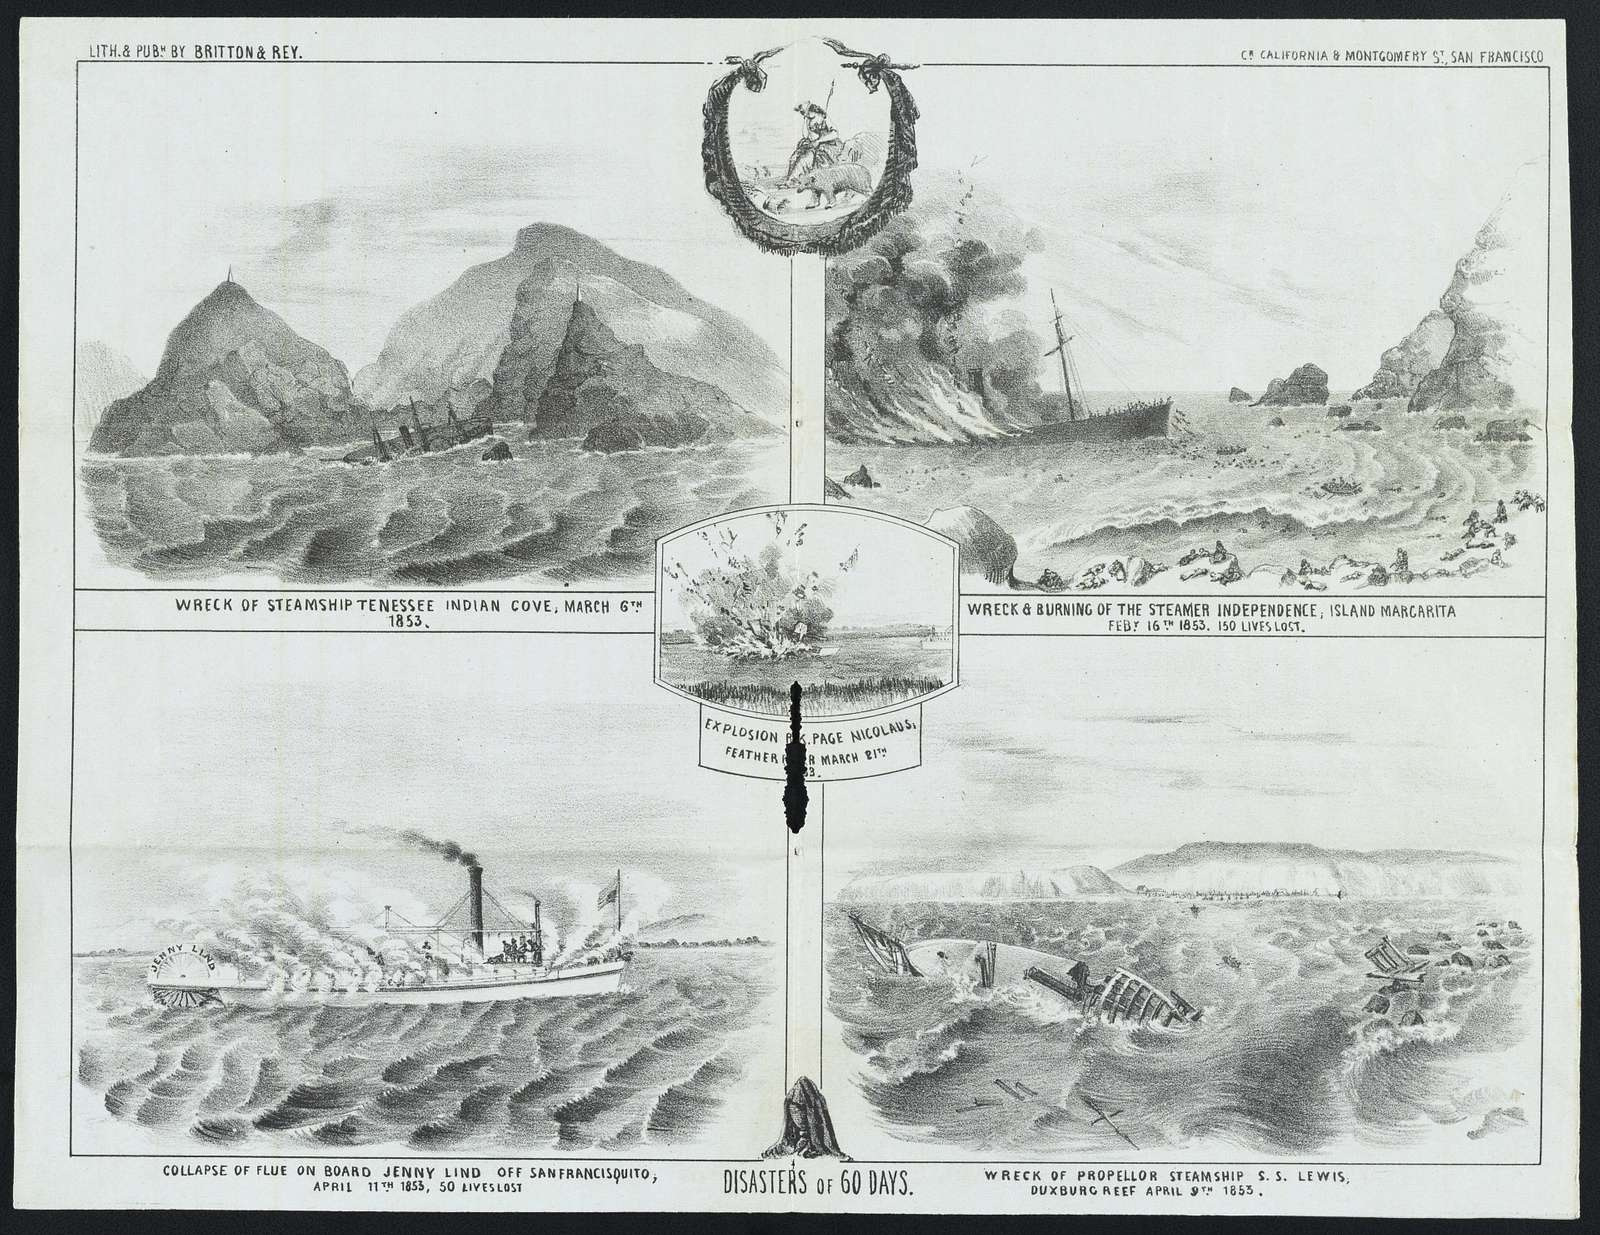 Disasters of 60 days : Wreck of Steamship Tennessee, Indian Cove, March 6th, 1853 ; Wreck & burning of the steamer Independence on the island of Margarita, Feby. 16th, 1853. 150 lives lost ; Collapse of flue on board Jenny Lind off San Francisquito, April 11th, 1853, 50 lives lost ; Wreck of propellor steamship S.S. Lewis, Duxburg Reef, April 9th, 1853 / / Lith. & pubh. by Britton & Rey, cr. California & Montgomery St., San Francisco.